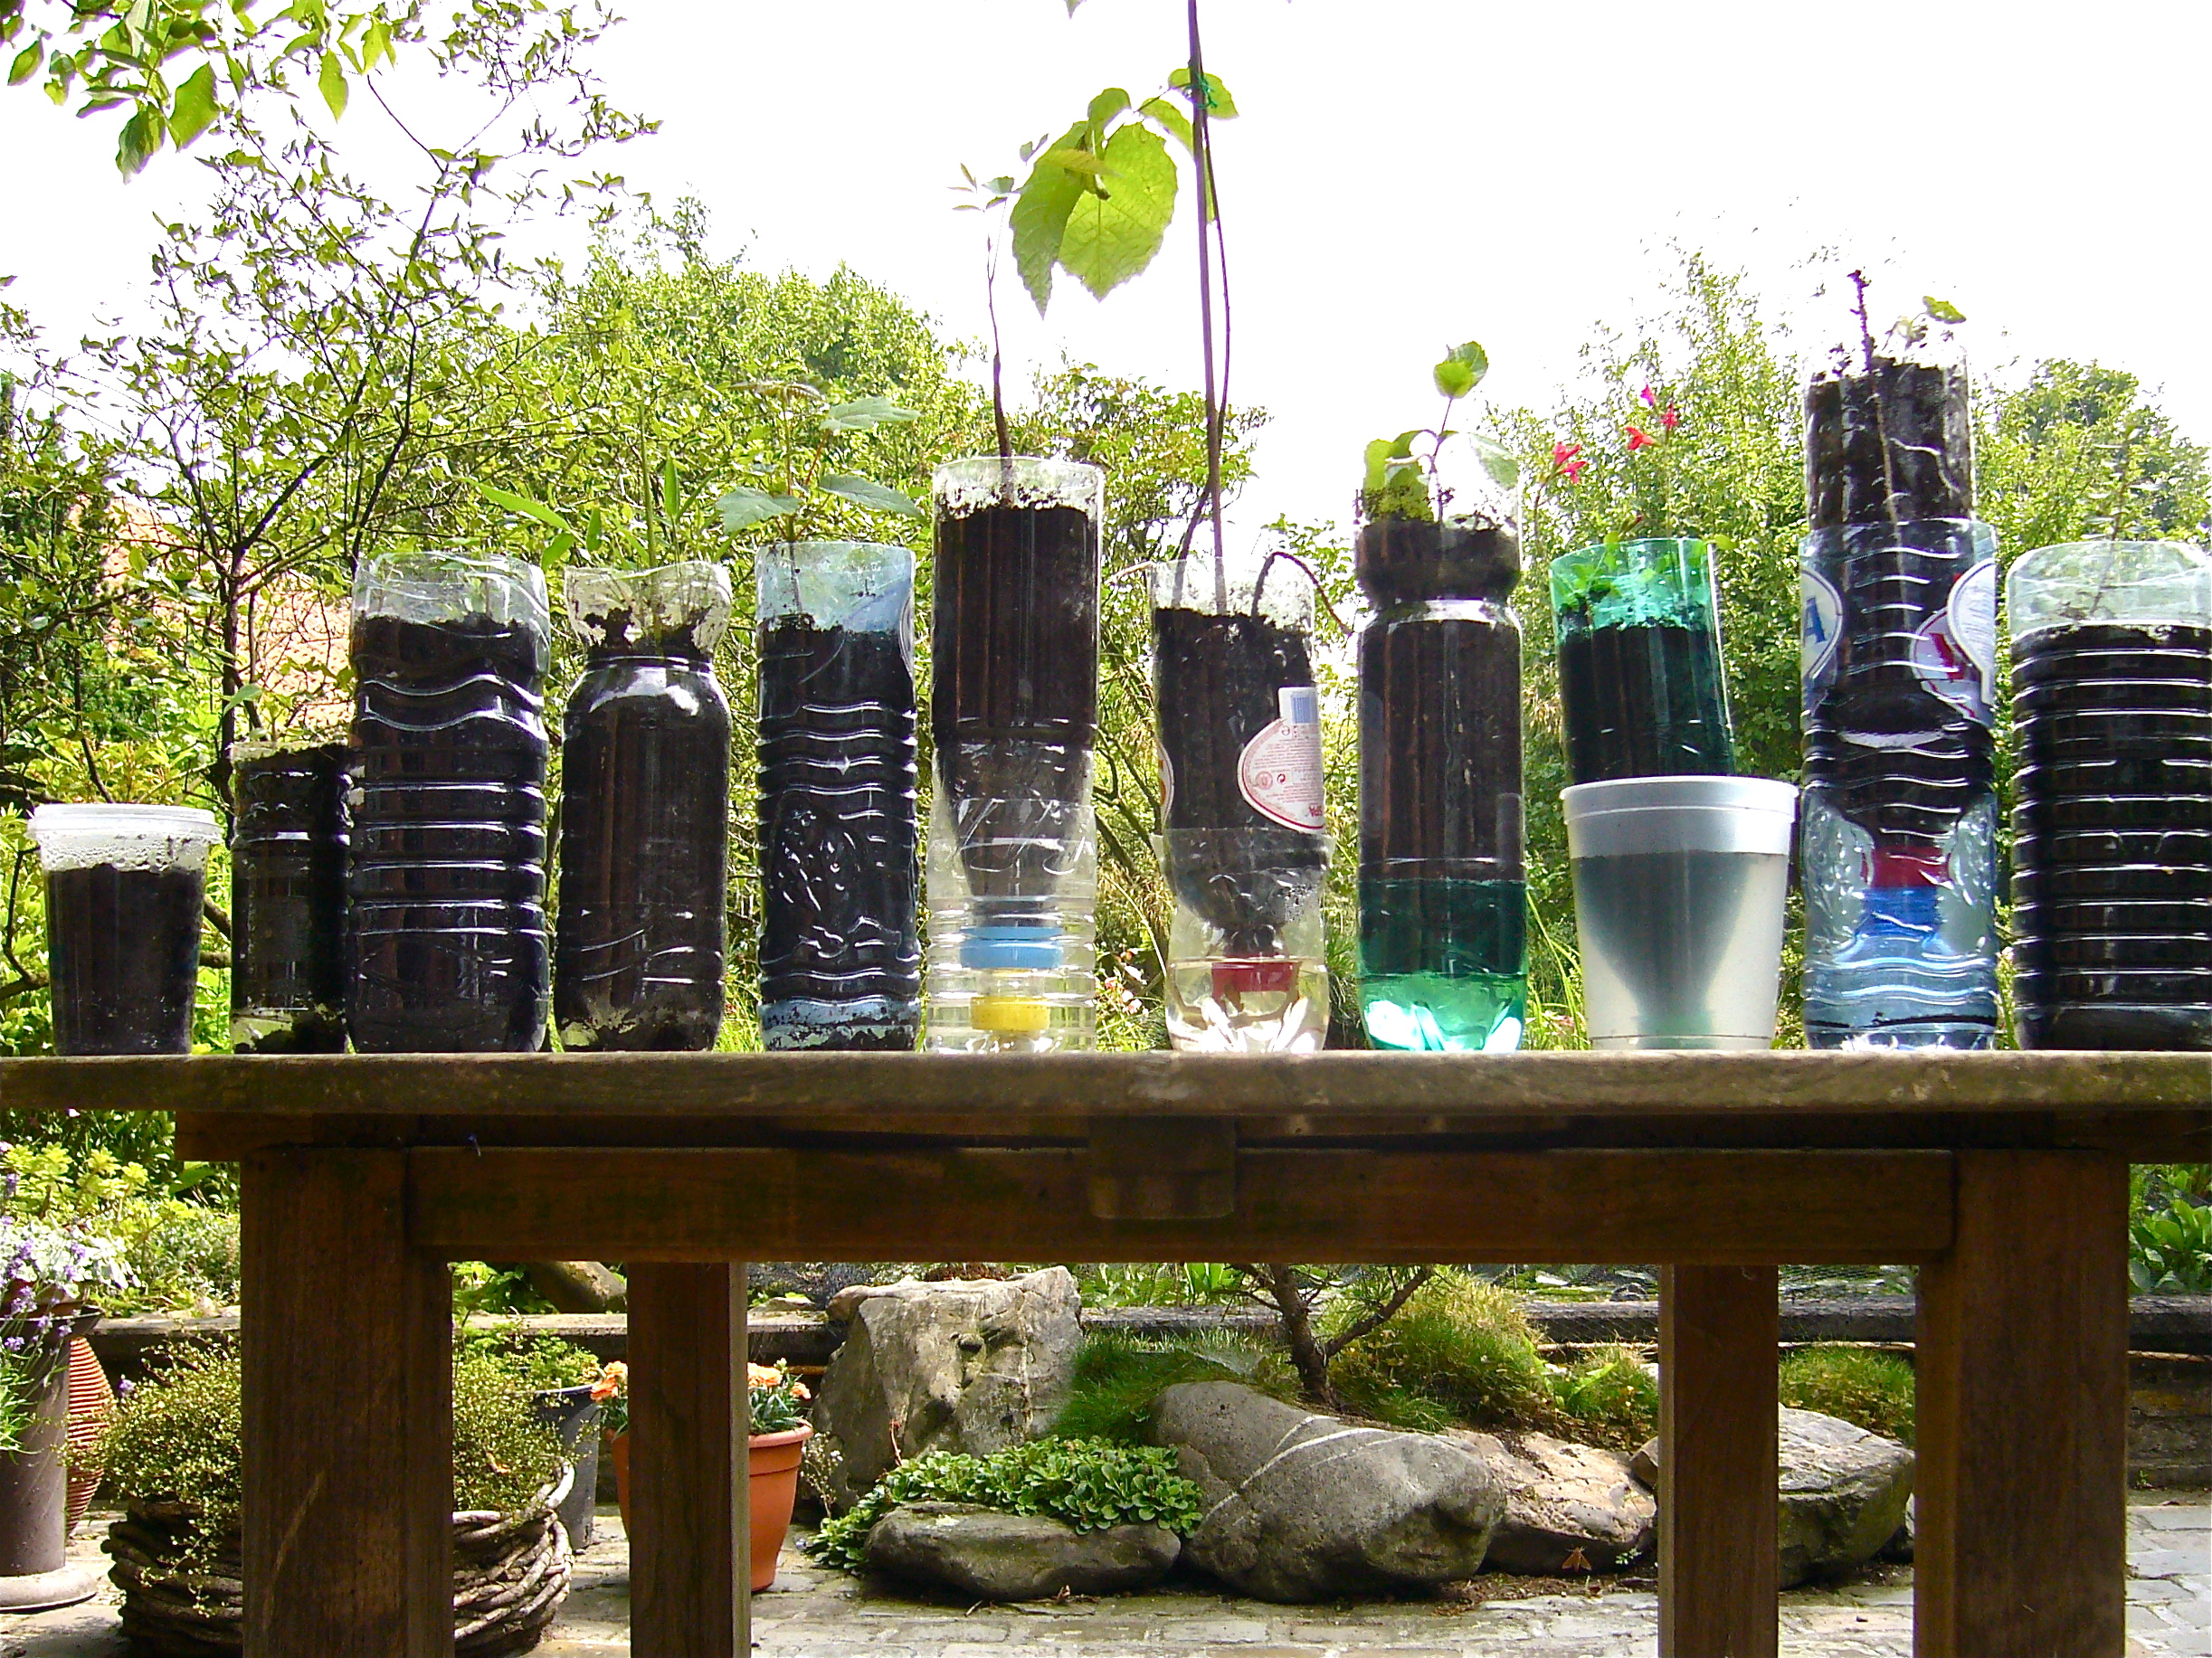 Growing vegetables and tree saplings in recycled bottles